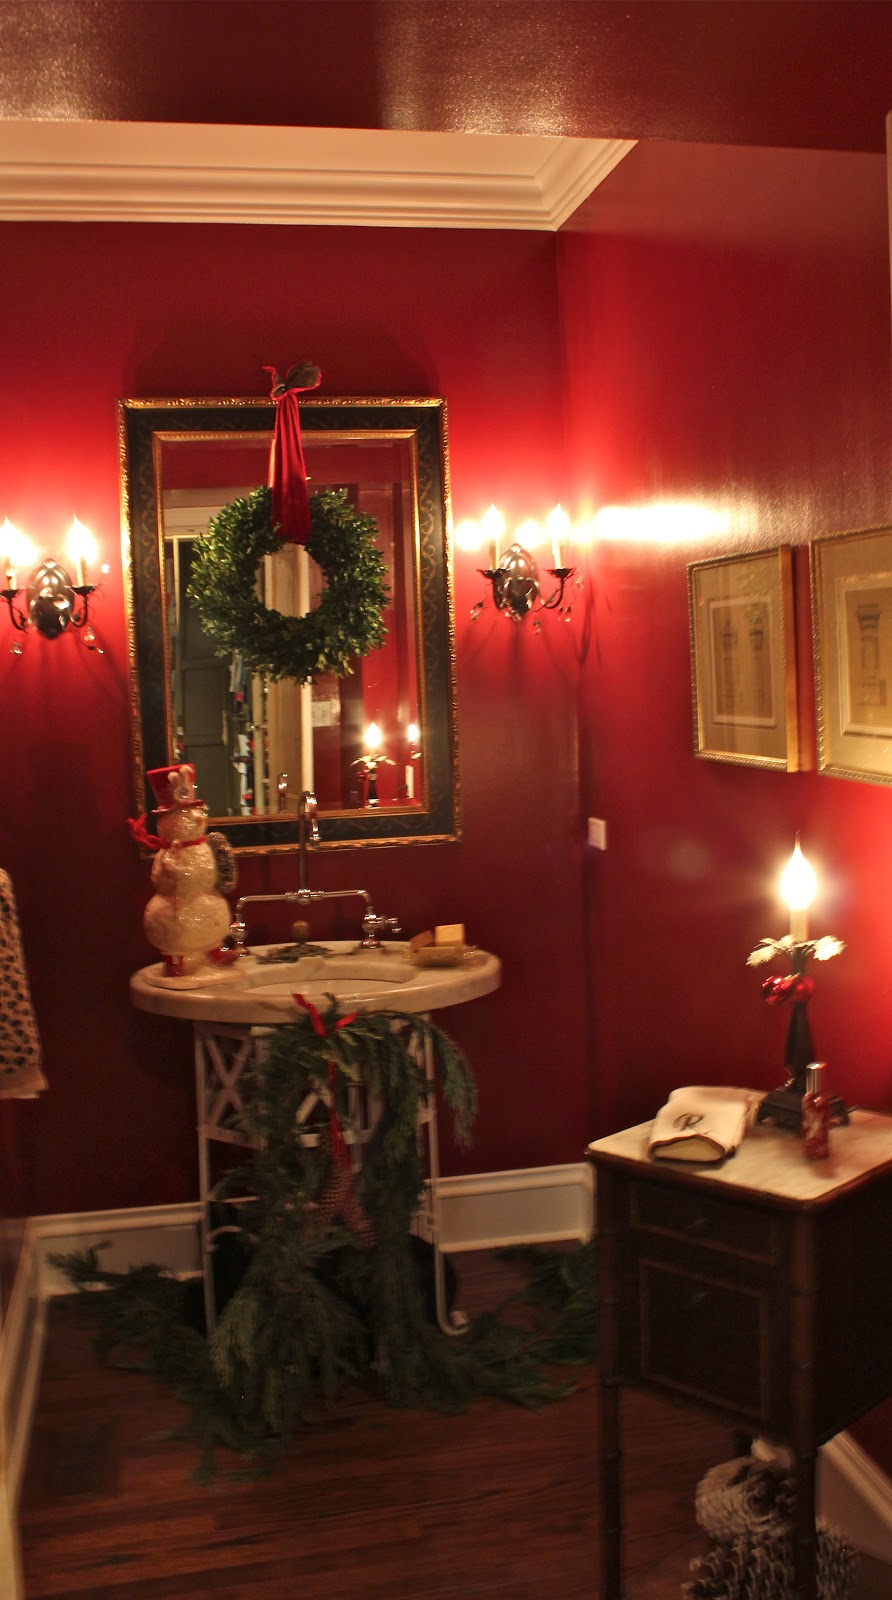 5th and state Our Christmas Showhouse